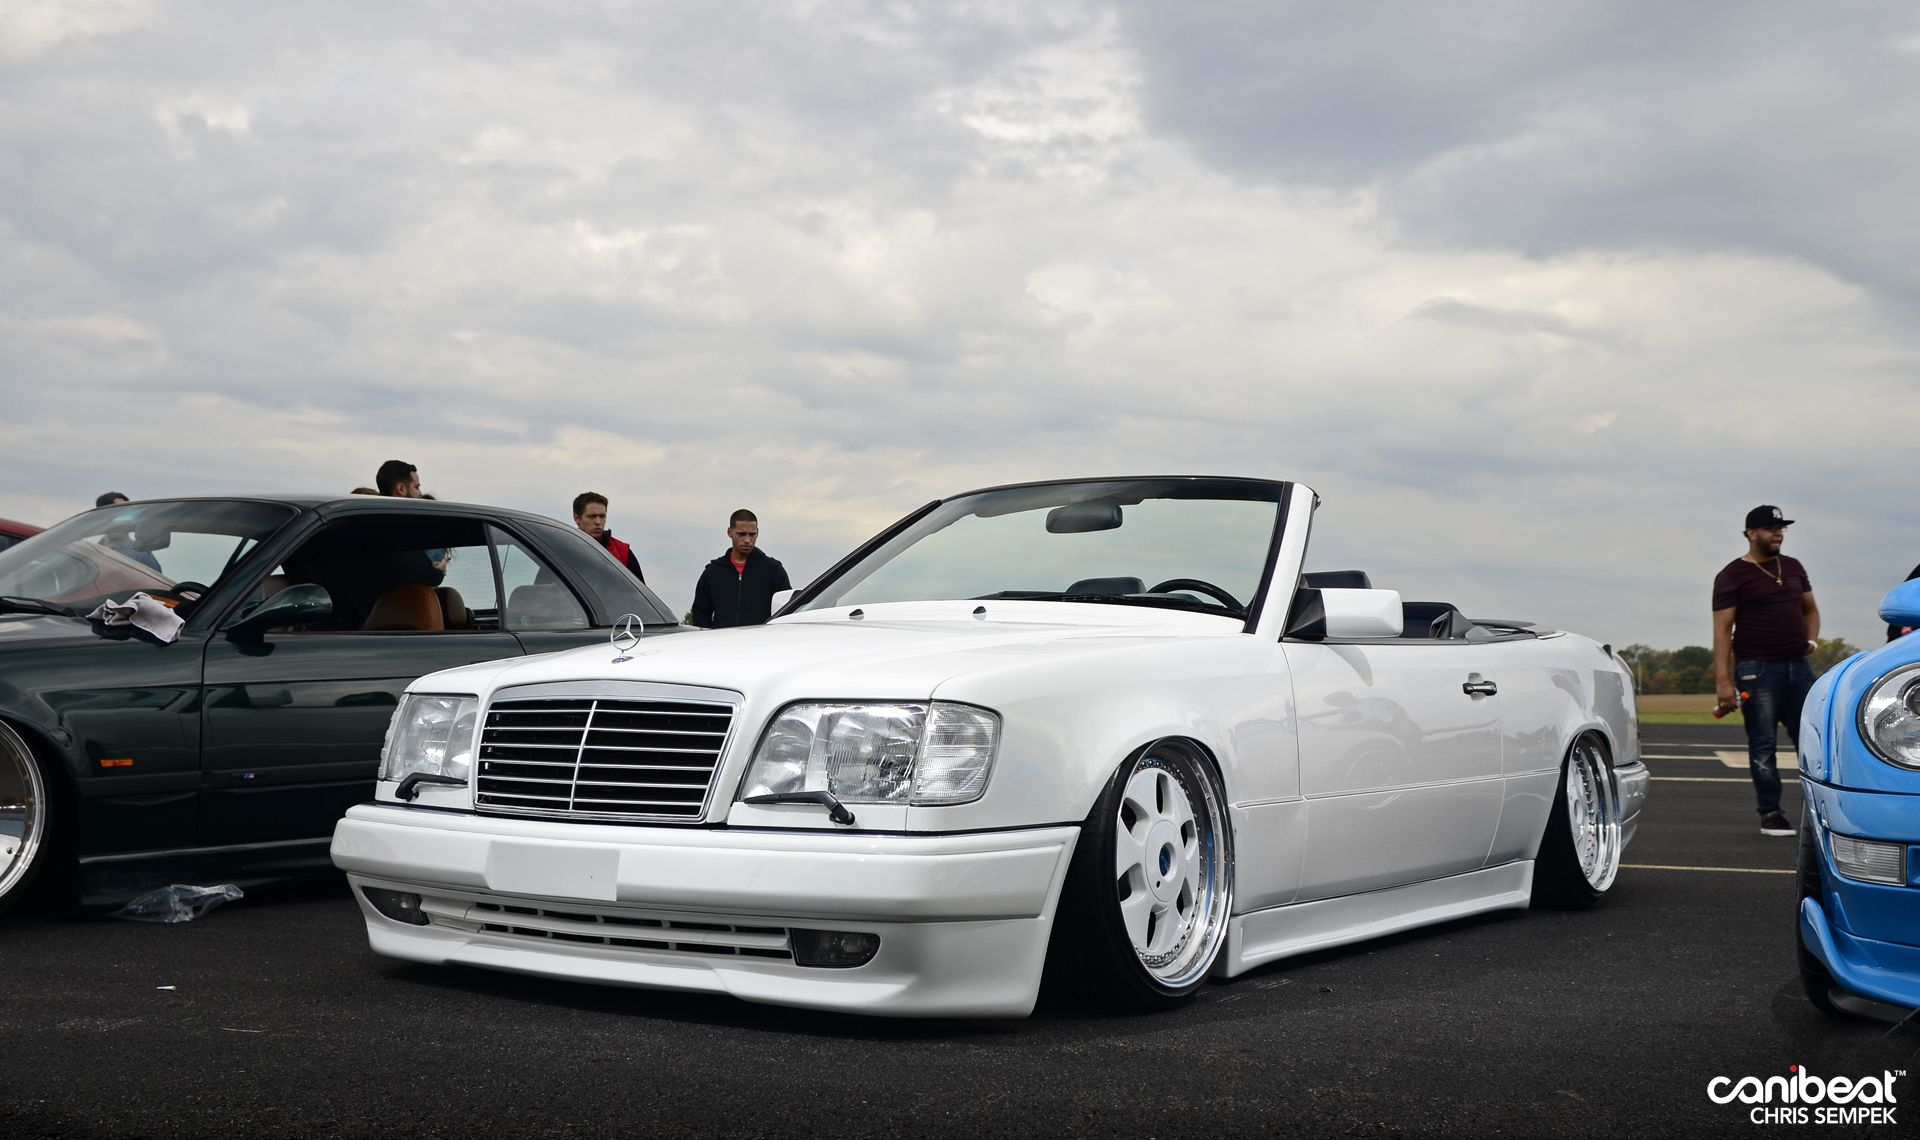 First Class Fitment 2014: Official Coverage (Part One)